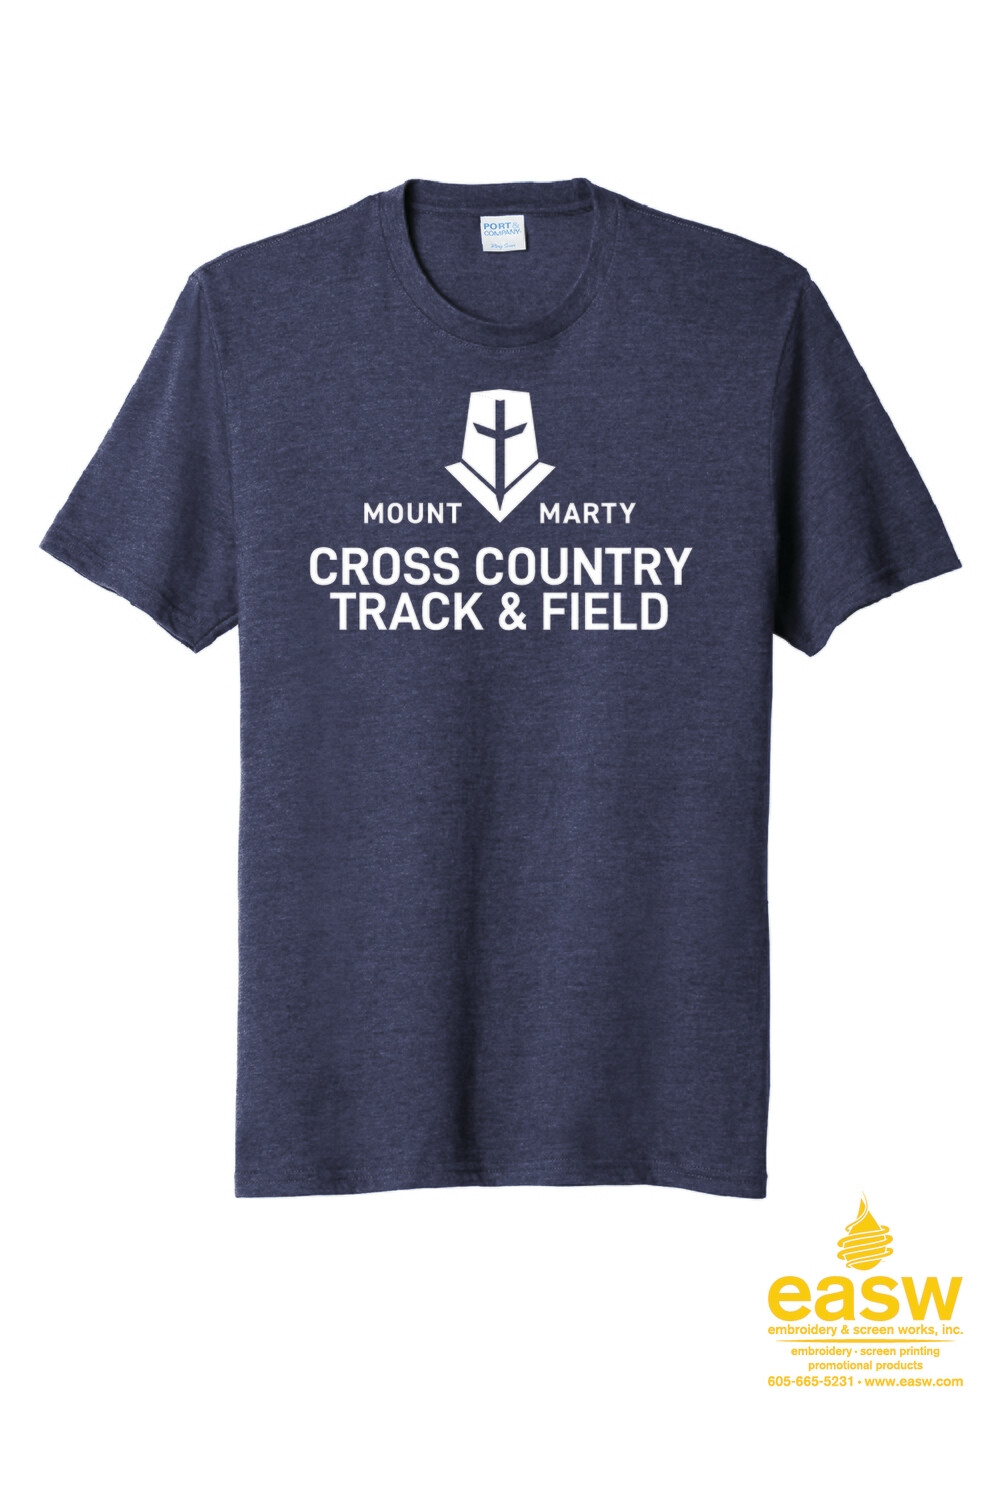 Cross Country Track & Field Tees